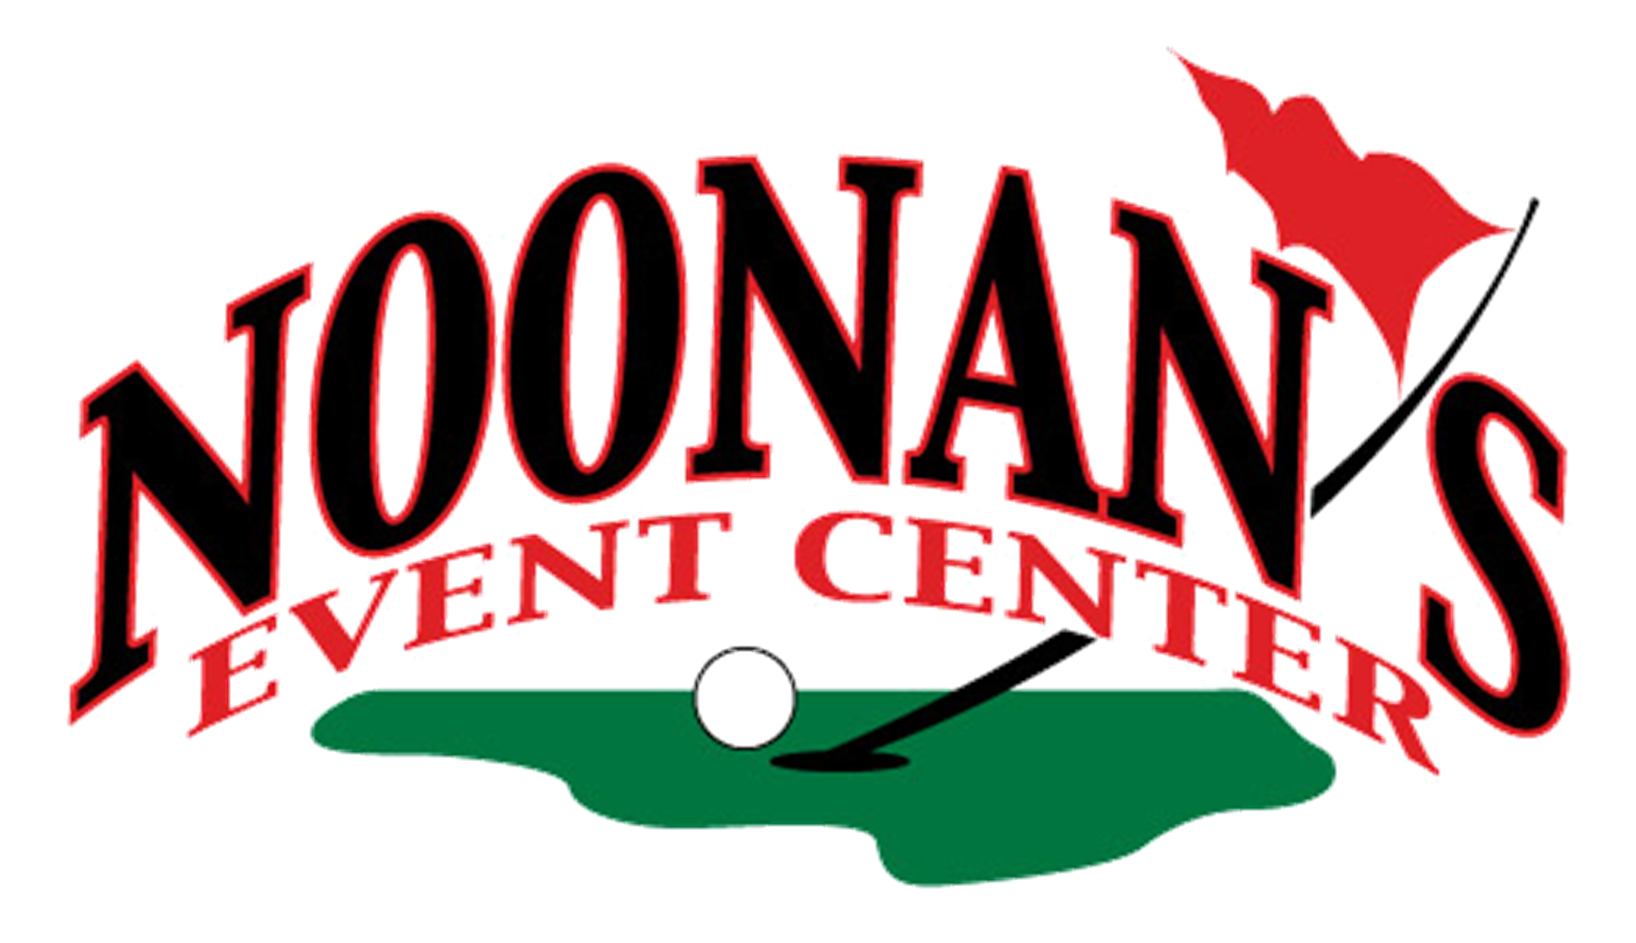 Noonan's Event Center